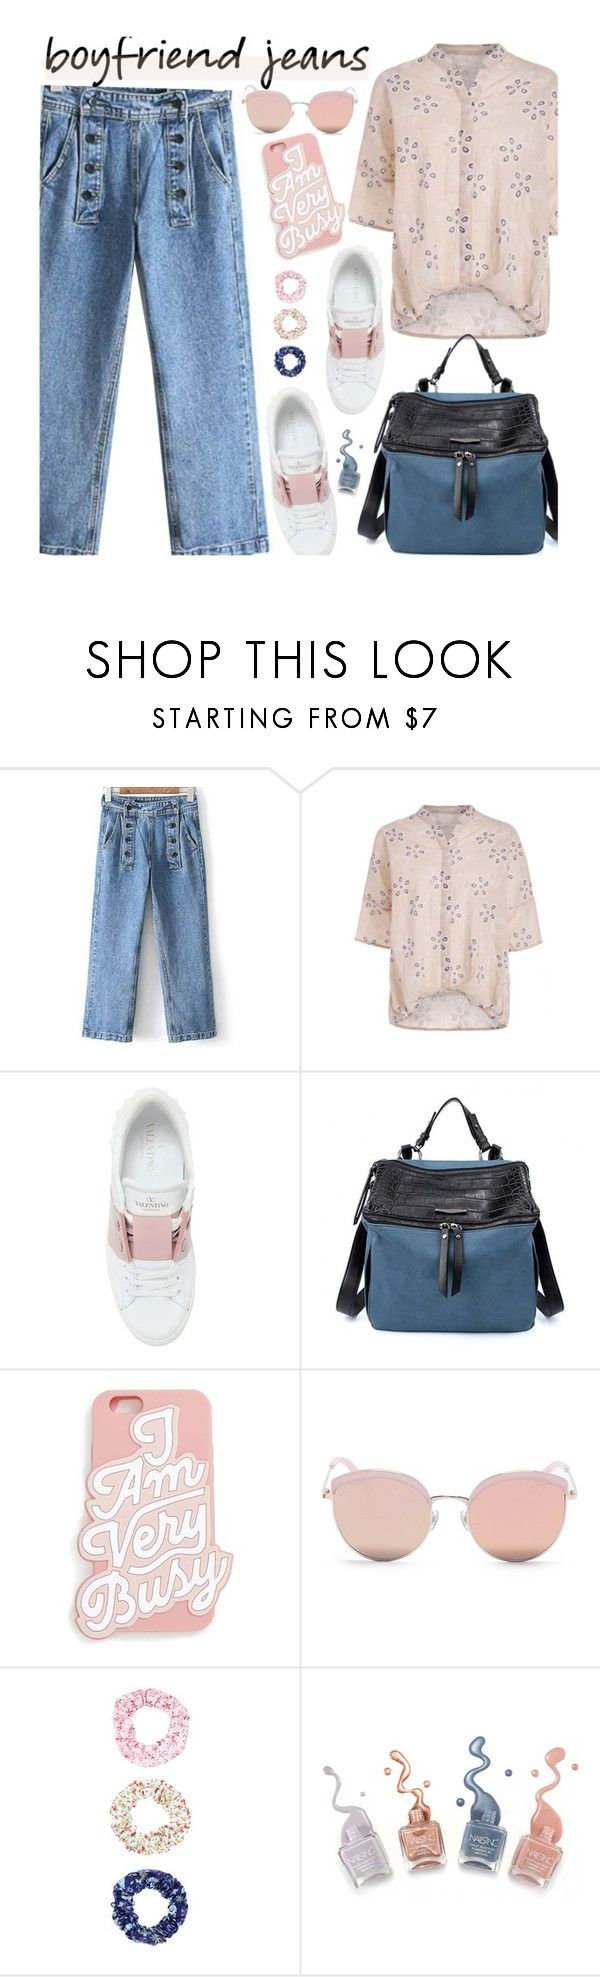 """""""Borrowed from the Boys: Boyfriend Jeans"""" by zaful ❤ liked on Polyvore featuring Valentino, ban.do, Stephane + Christian, Accessorize, casualoutfit, boyfriendjeans and zaful"""